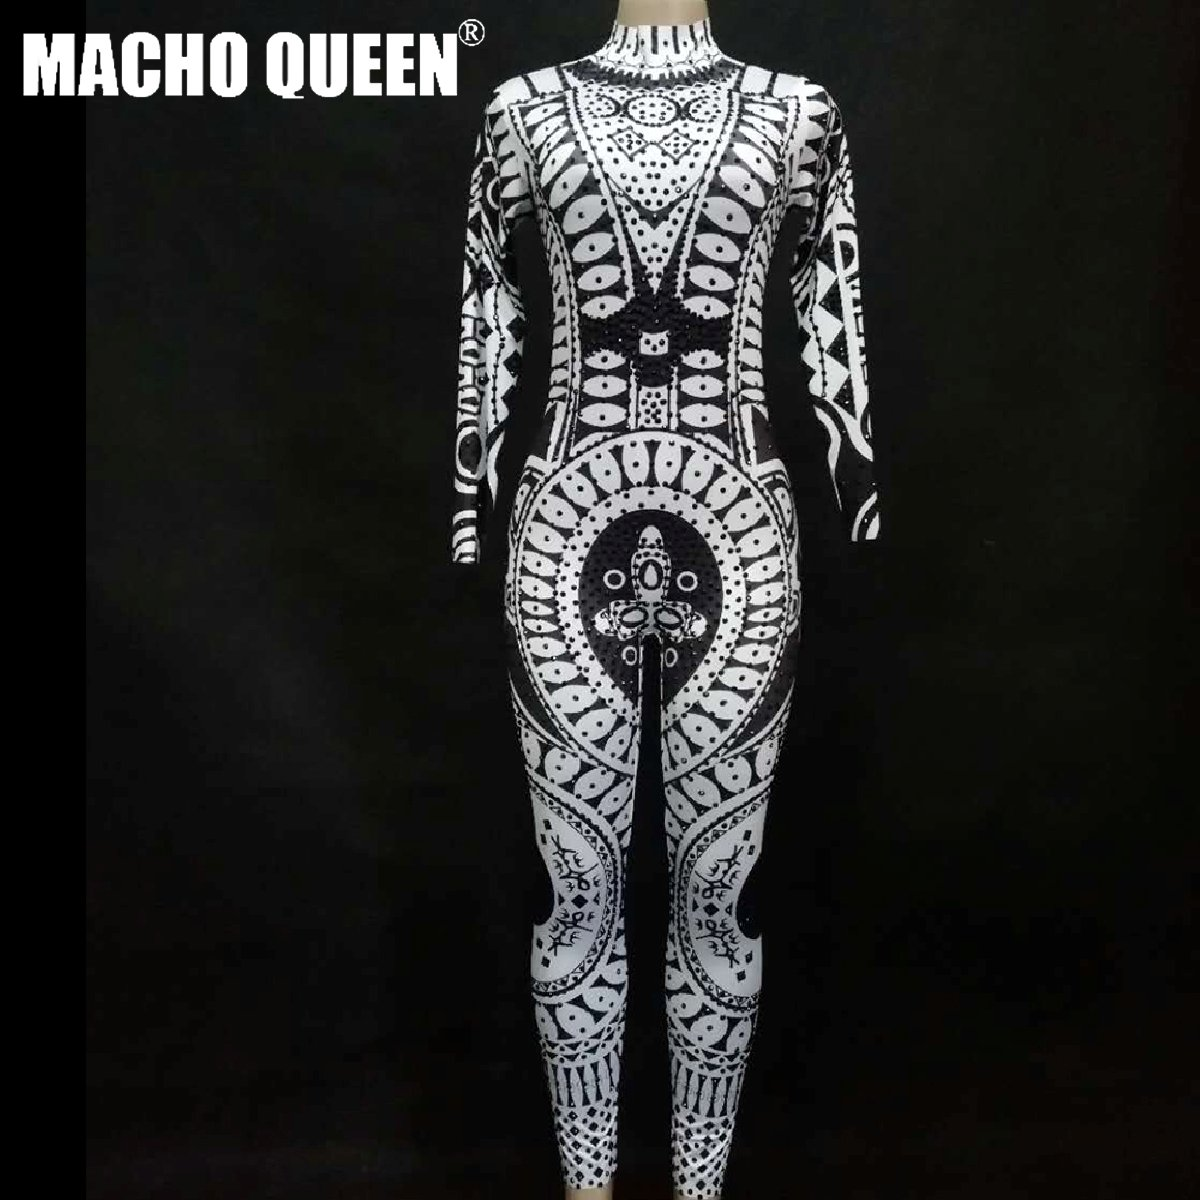 Drag Queen Costumes Sexy Tattoo Rhinestone Bodysuit Crystal Jumpsuit  Carnival Runway Performance Party Celebrity Clothing a1b3a137c